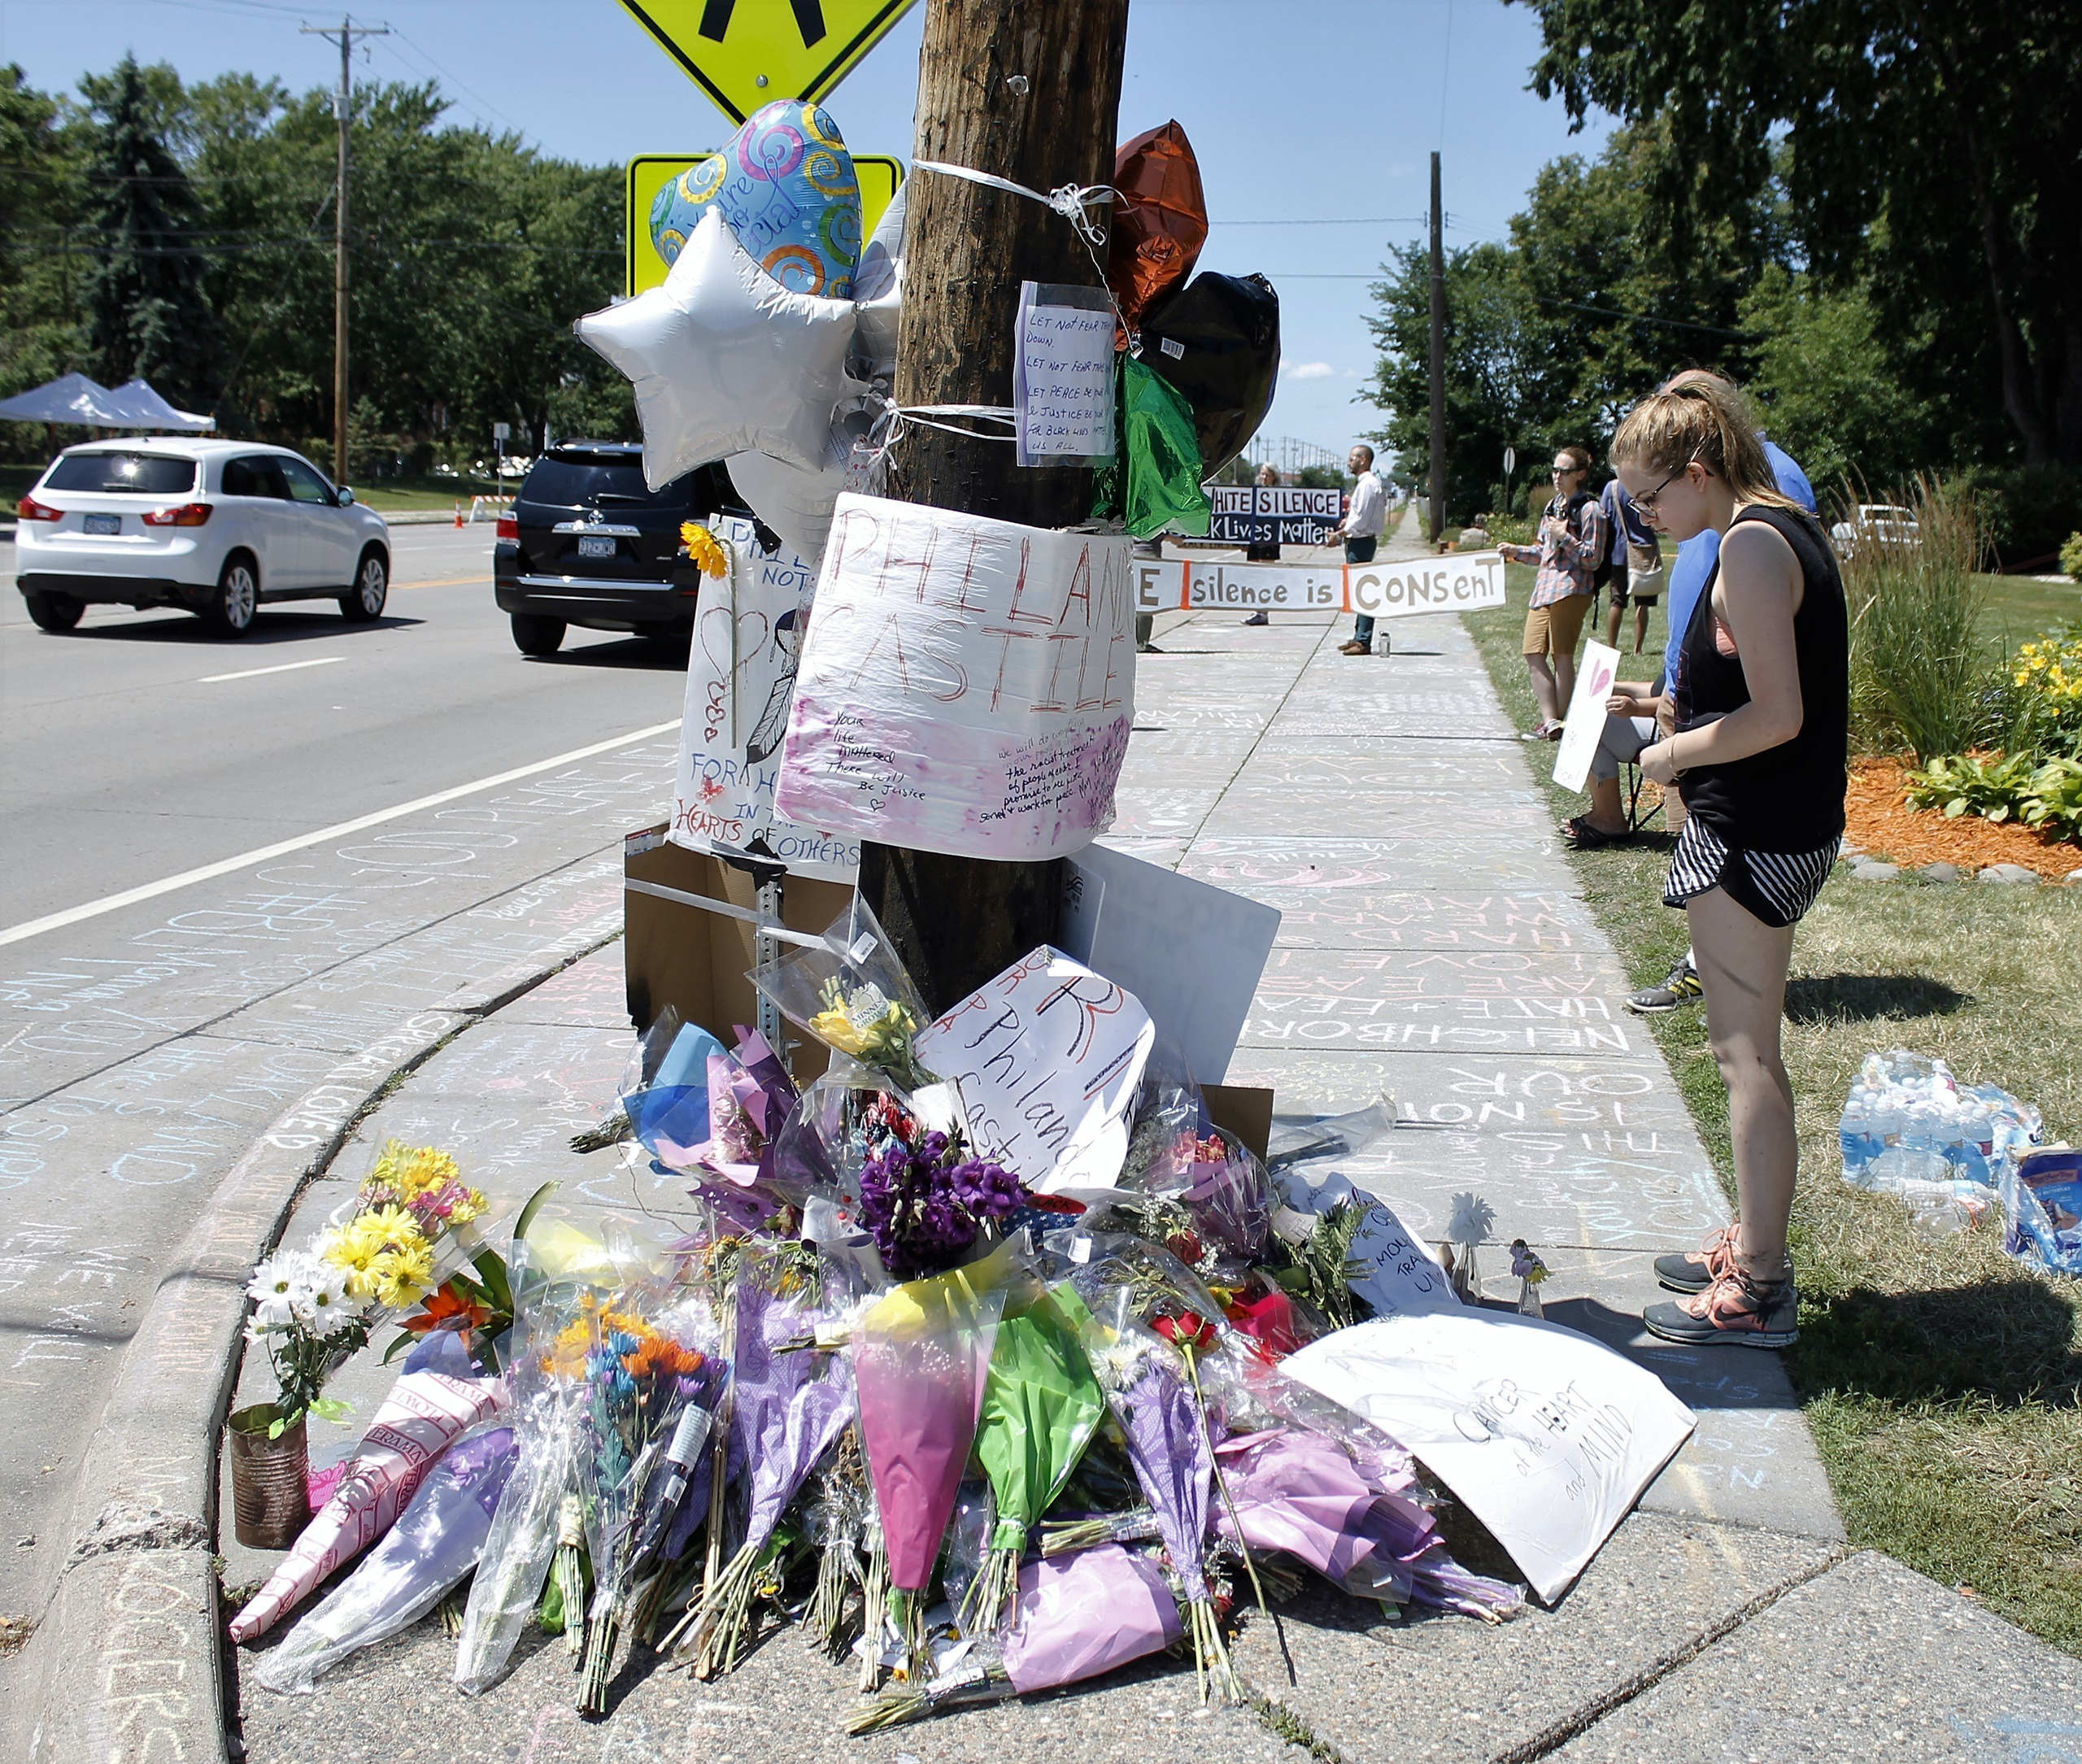 A person looks at a memorial in the Minneapolis suburb of Falcon Heights near the spot where Philando Castile was shot and killed by a police officer, July 9, 2016.